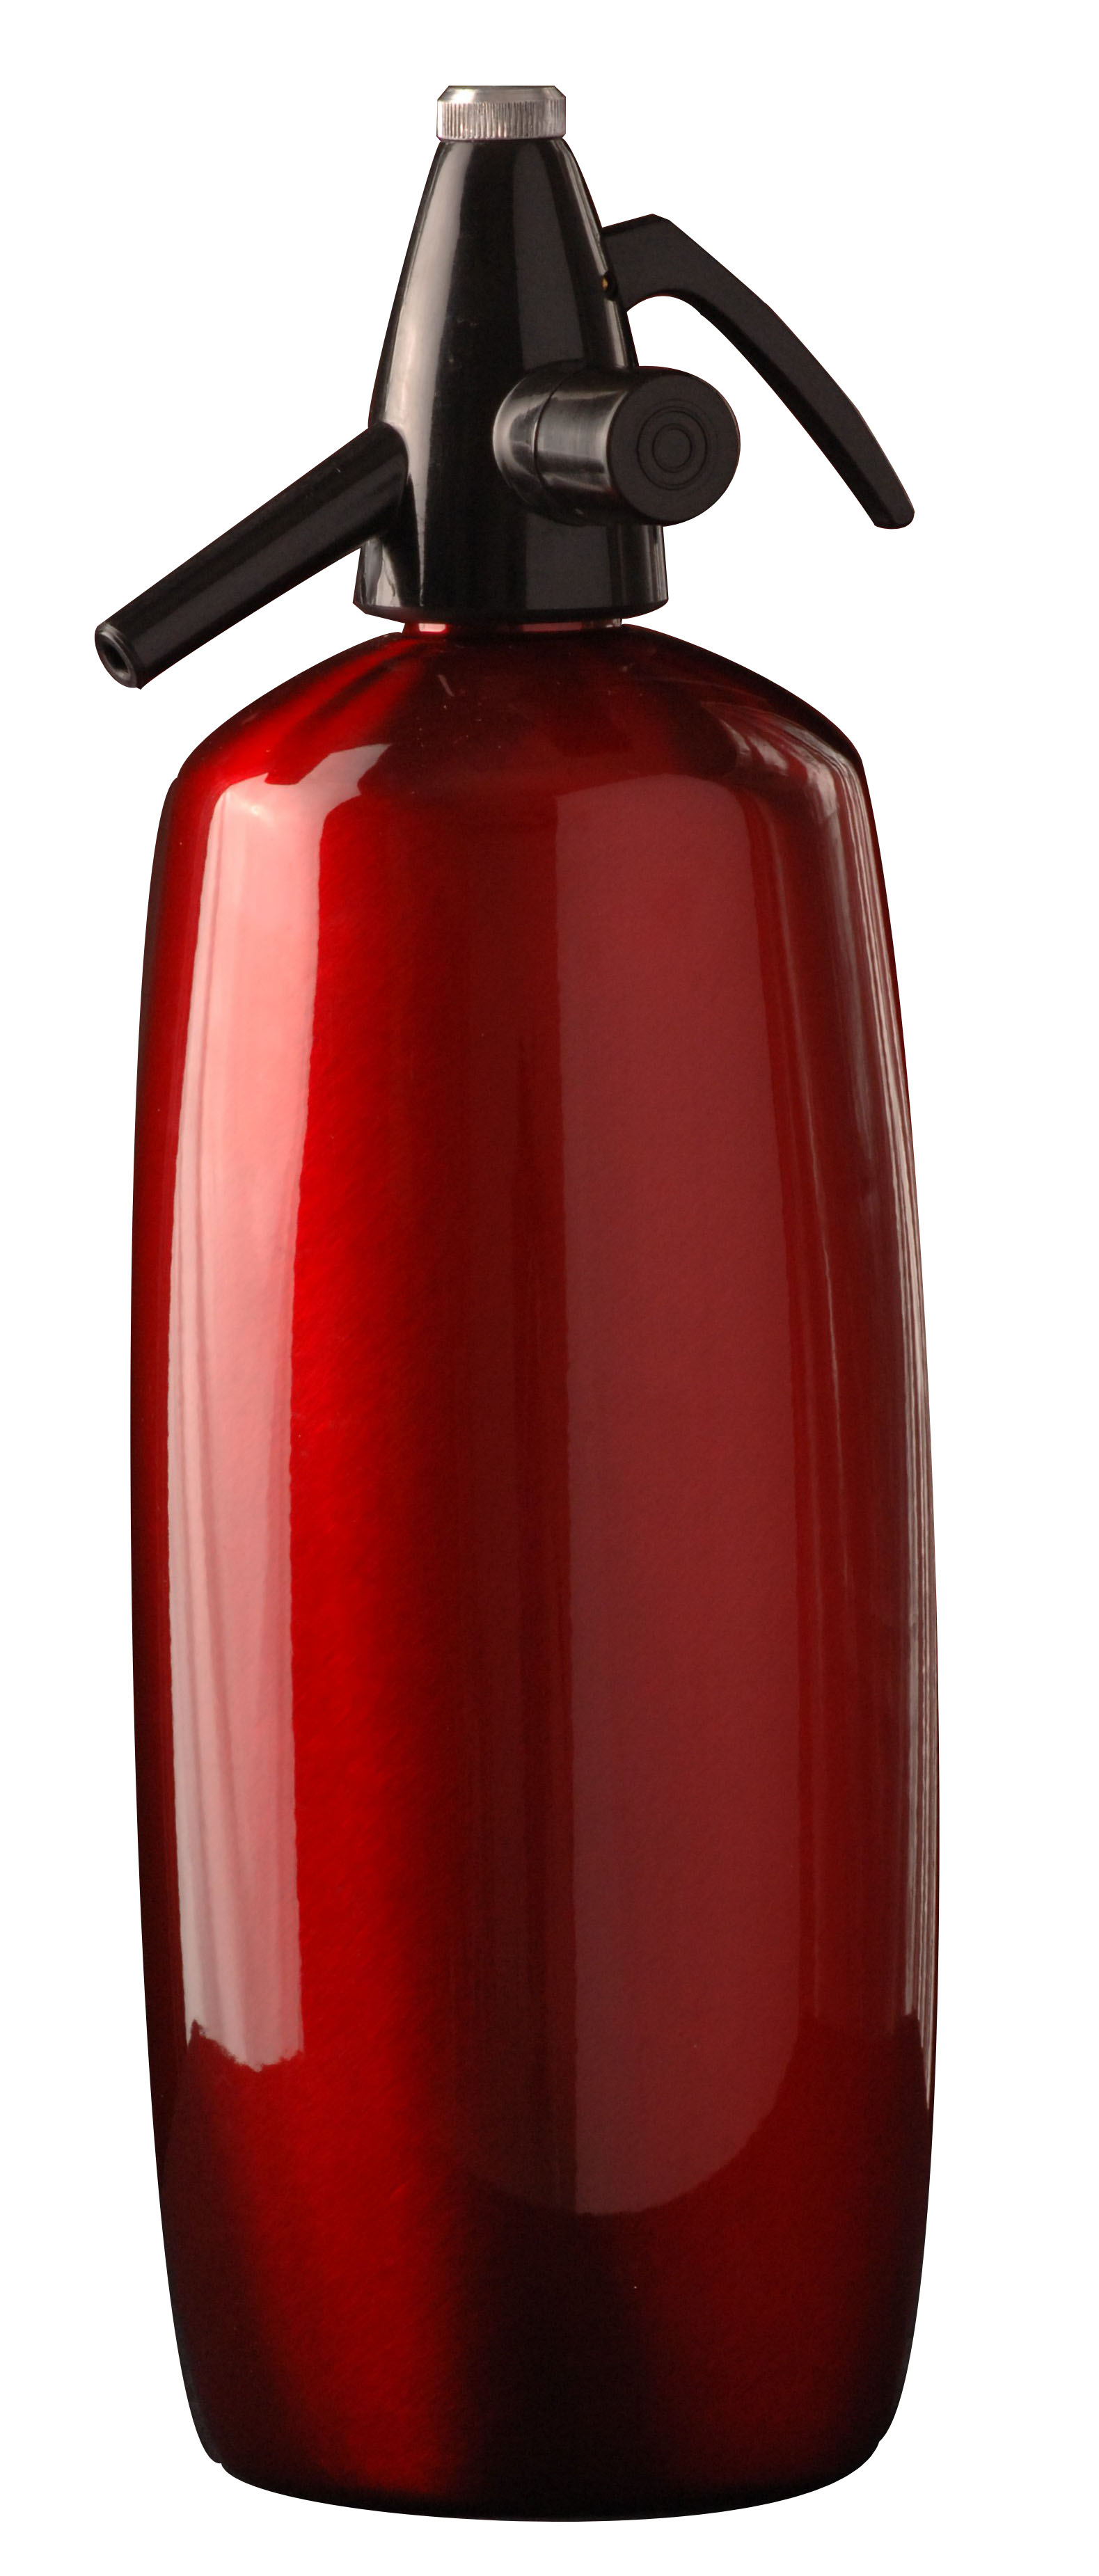 Liss Red Stainless Steel Traditional Soda Siphon, 2 Quart